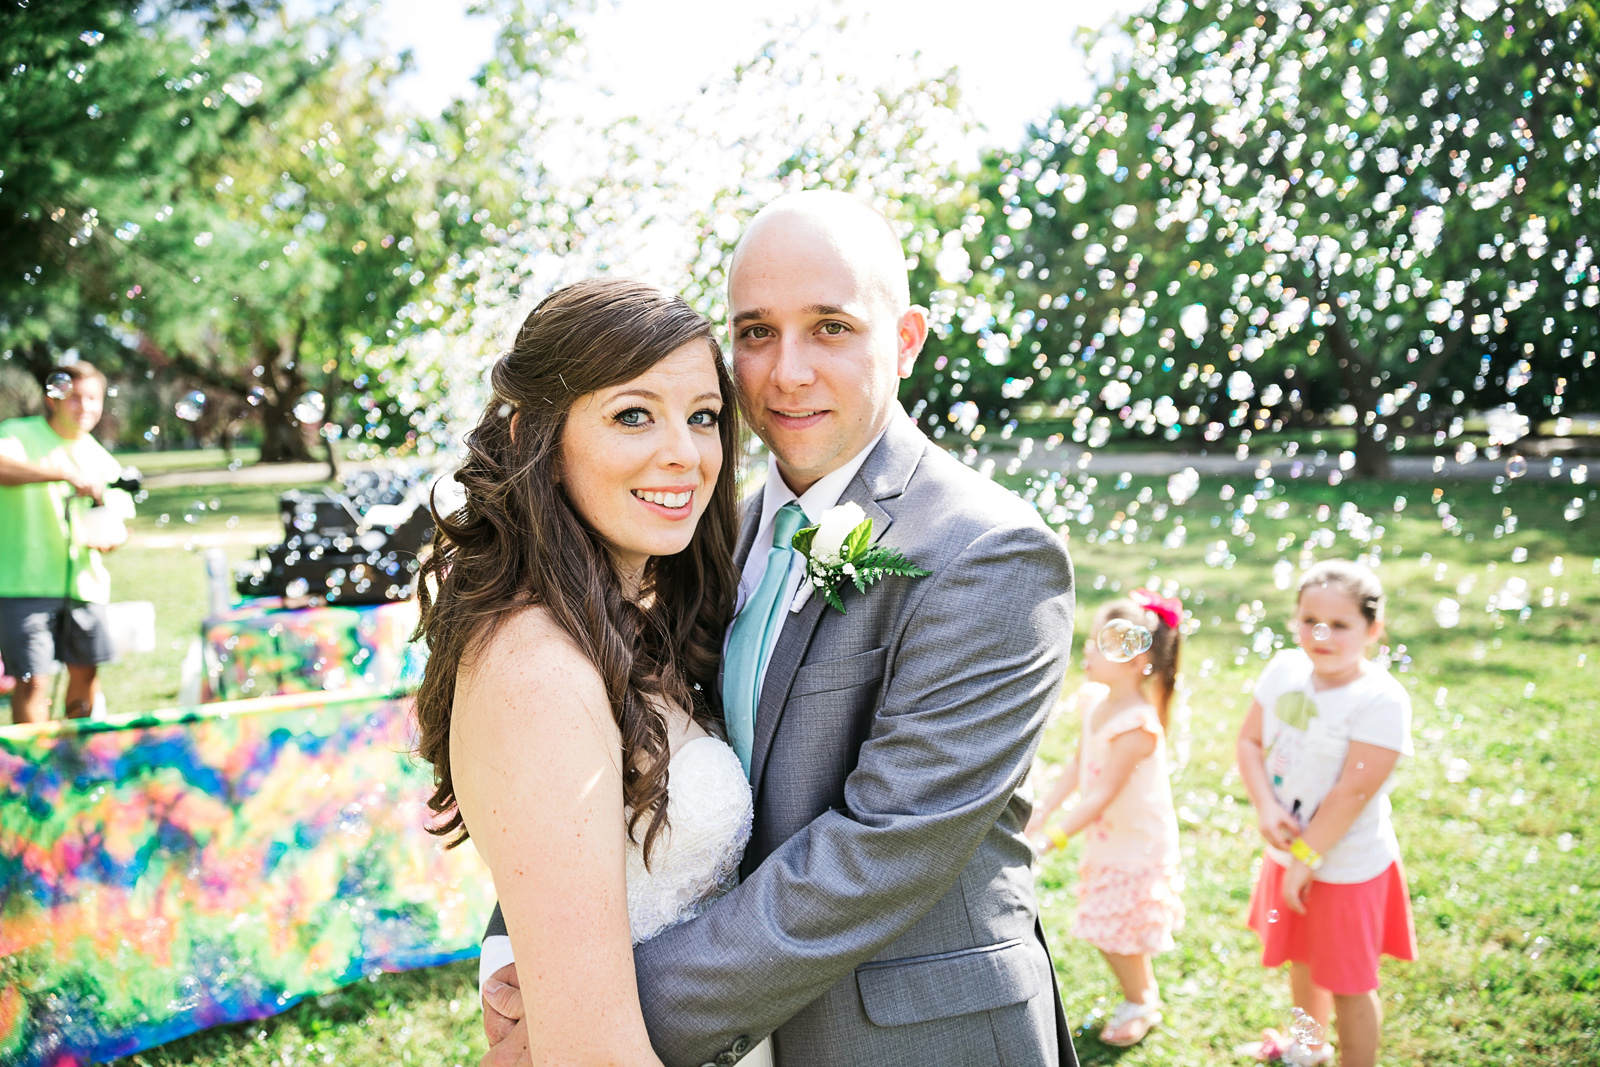 Oldani-Photography-St-Louis-Tower-Grove-Park-Wedding-Photography-Music-Stand_20140927_15183900.jpg